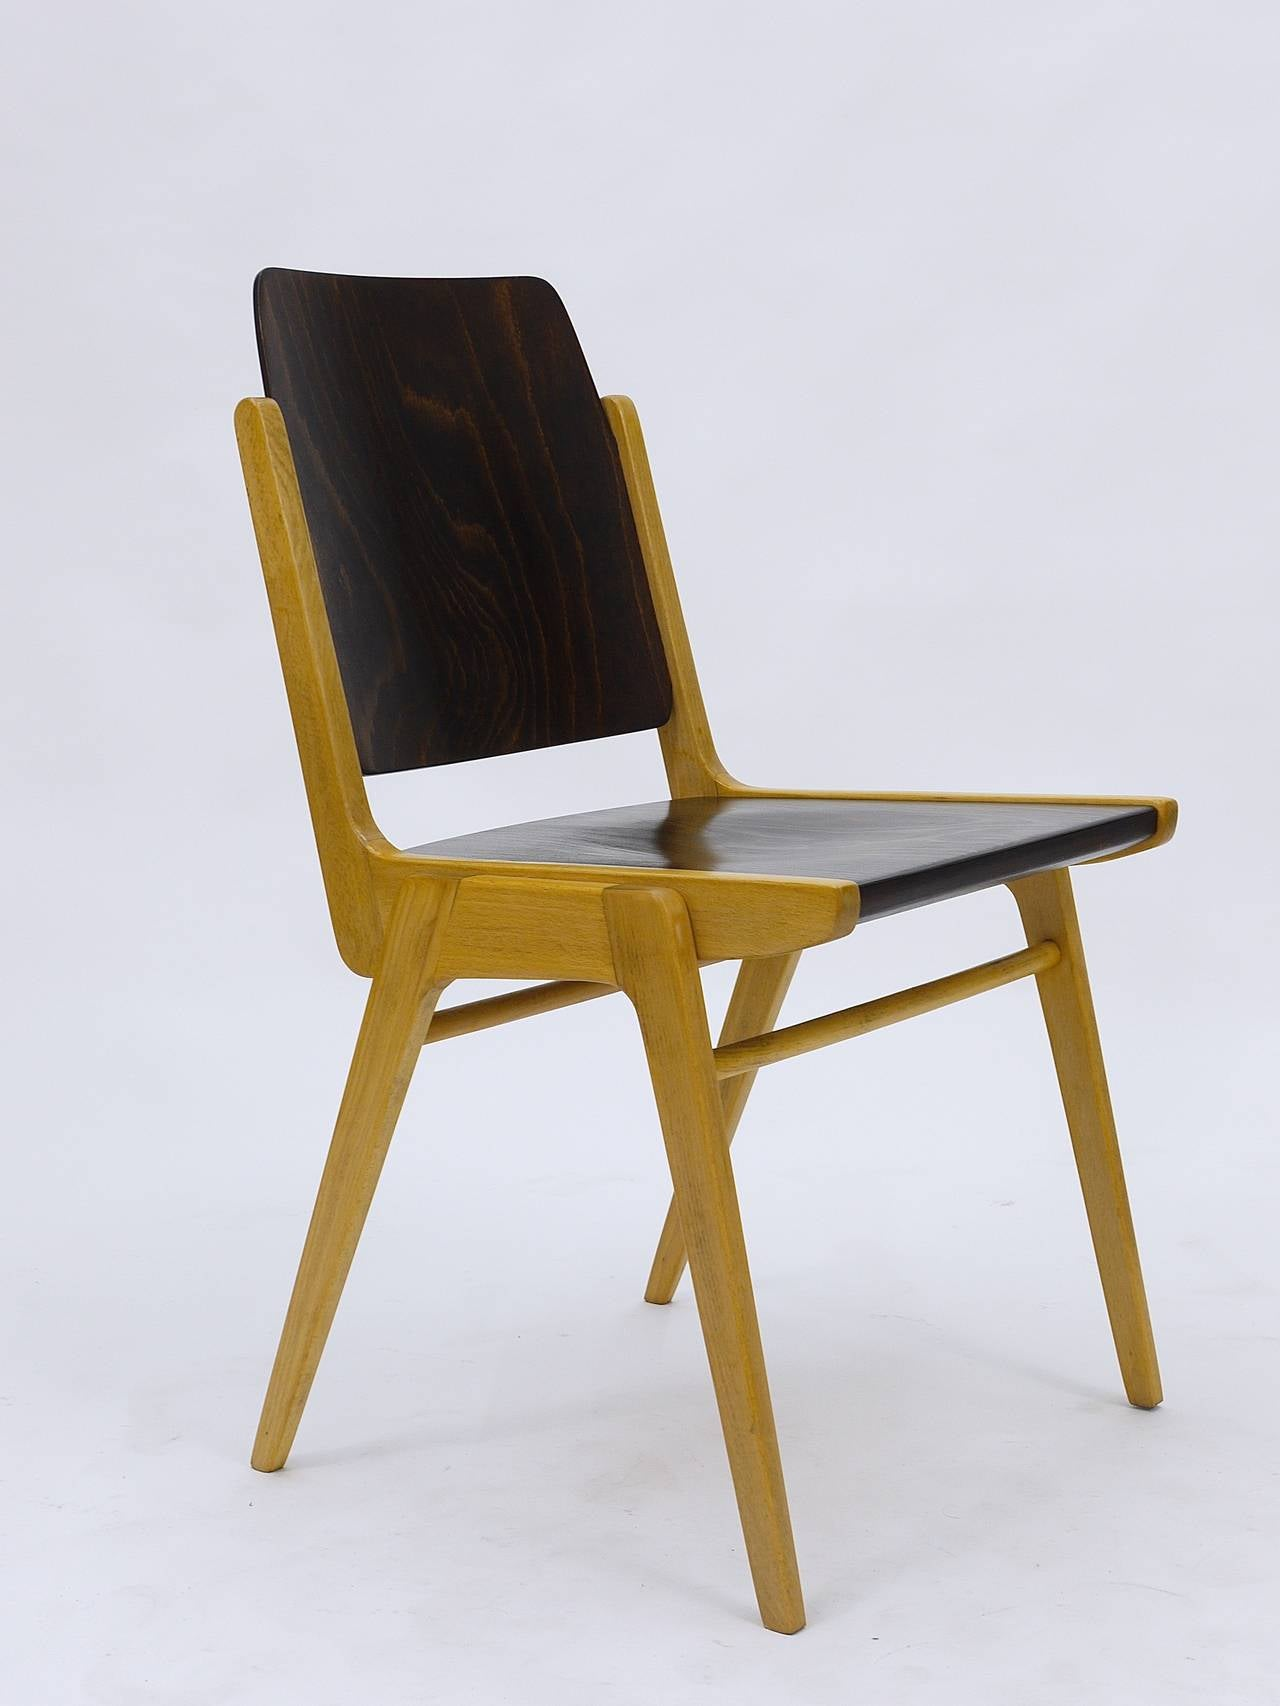 Up to 12 Austro Chair Stacking Chairs by Franz Schuster Wiesner